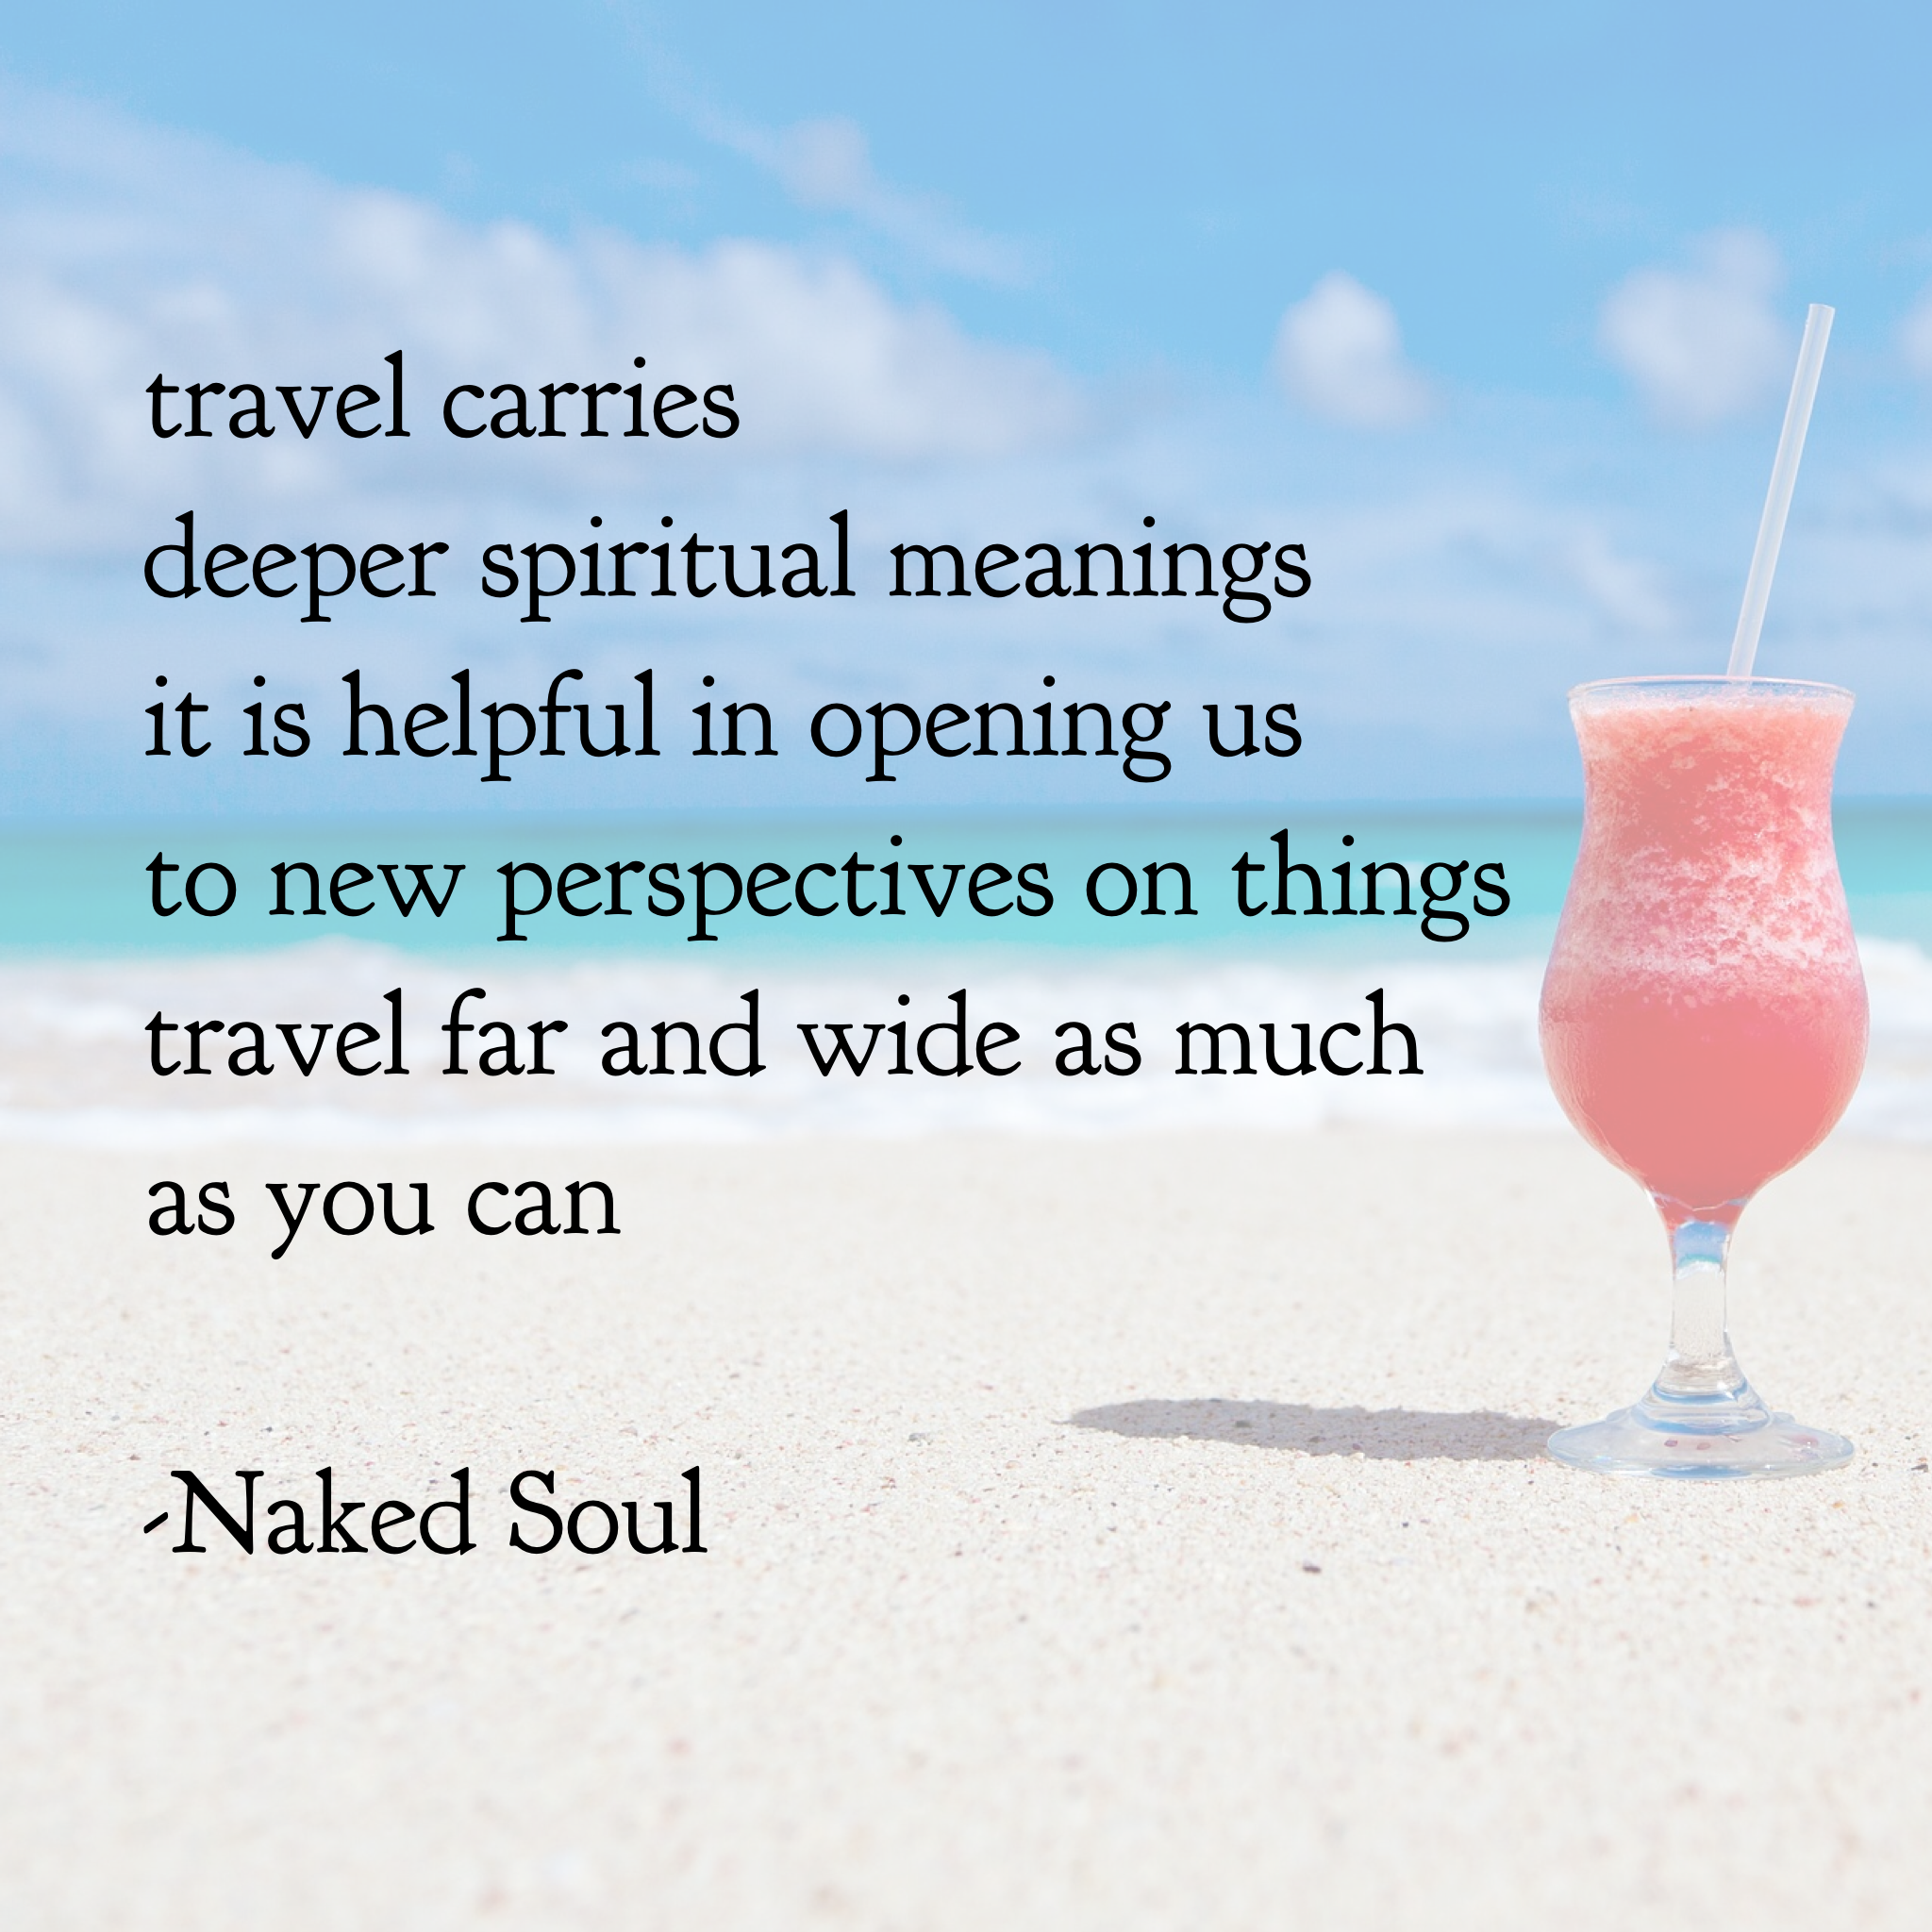 travel carries  deeper spiritual meanings it is helpful in opening us  to new perspectives on things travel far and wide as much as you can